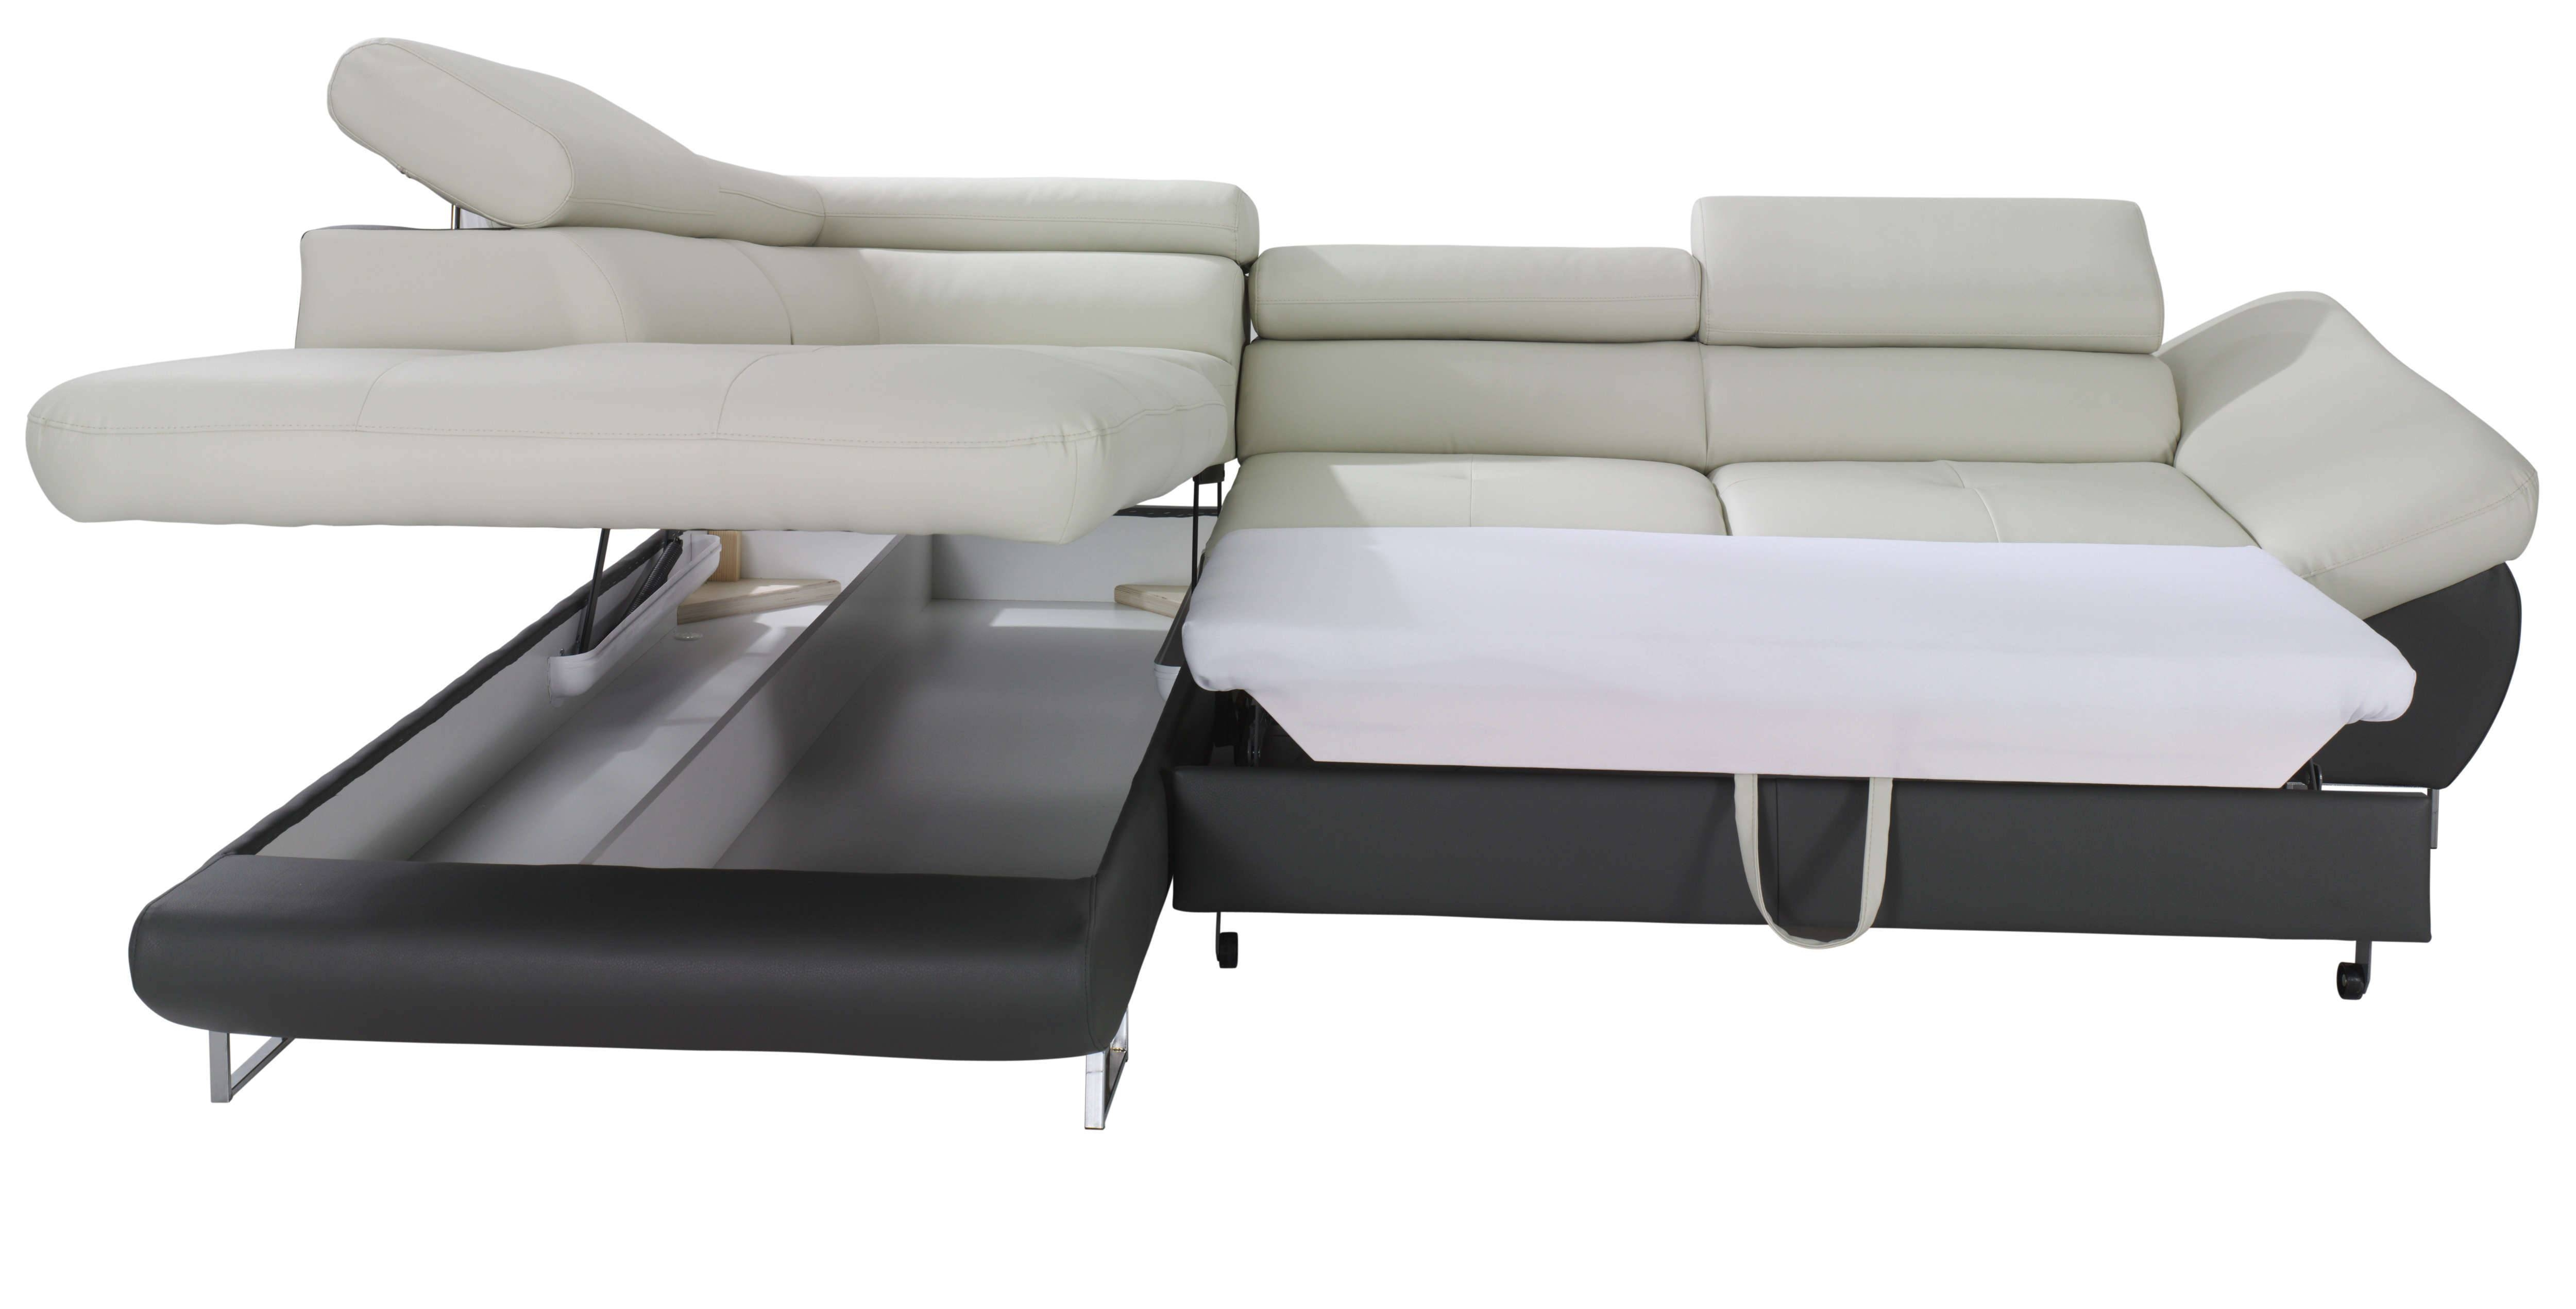 Fabio Sectional Sofa Sleeper With Storage | Creative Furniture Regarding Sectional Sofas With Sleeper And Chaise (View 12 of 30)